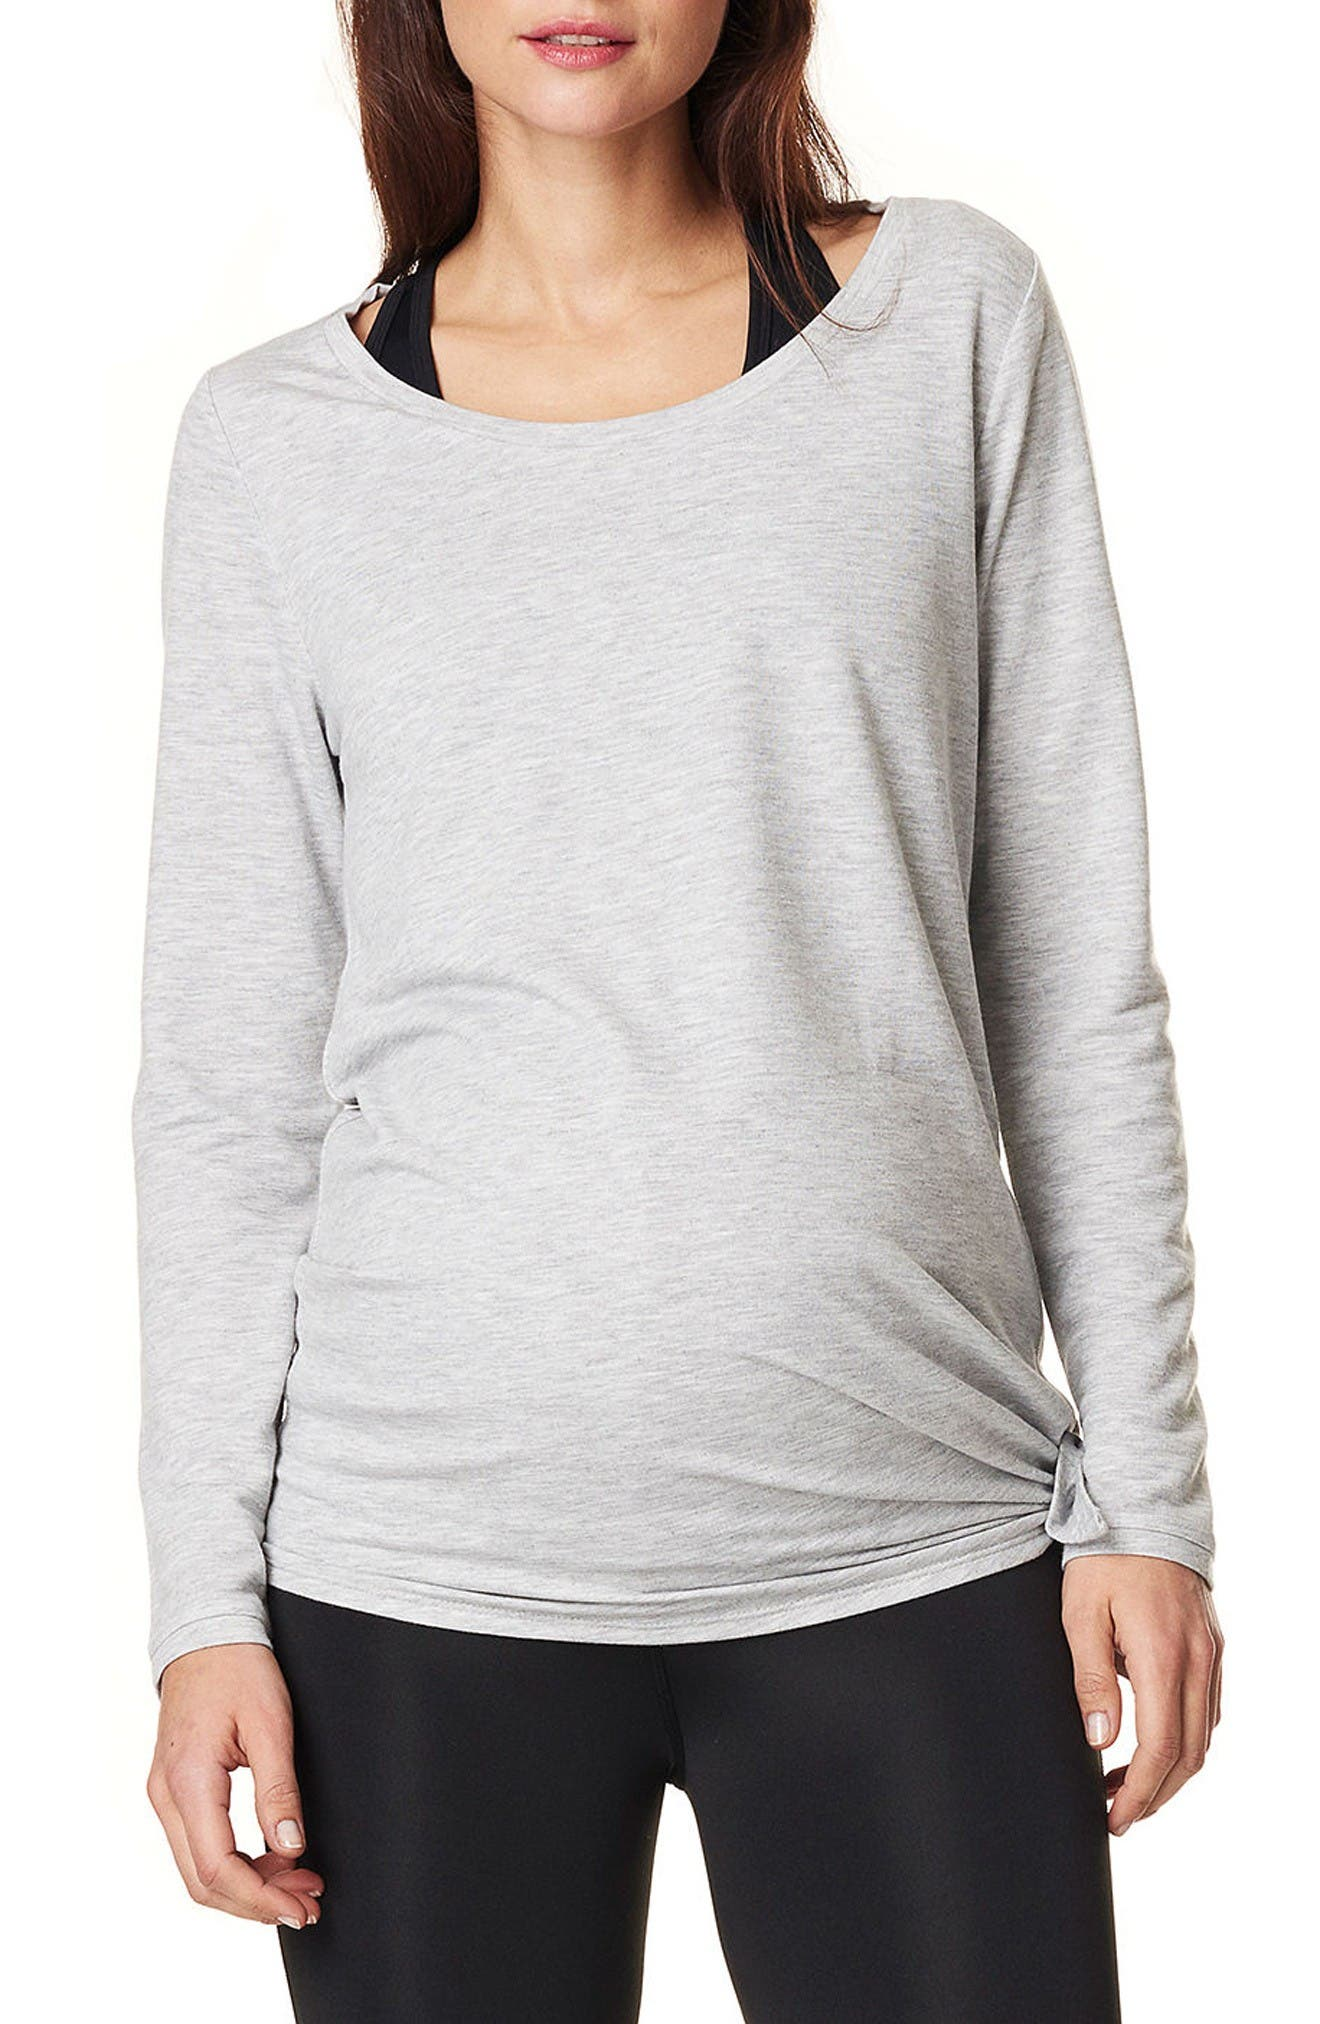 Alternate Image 1 Selected - Noppies Heather Athletic Maternity Top